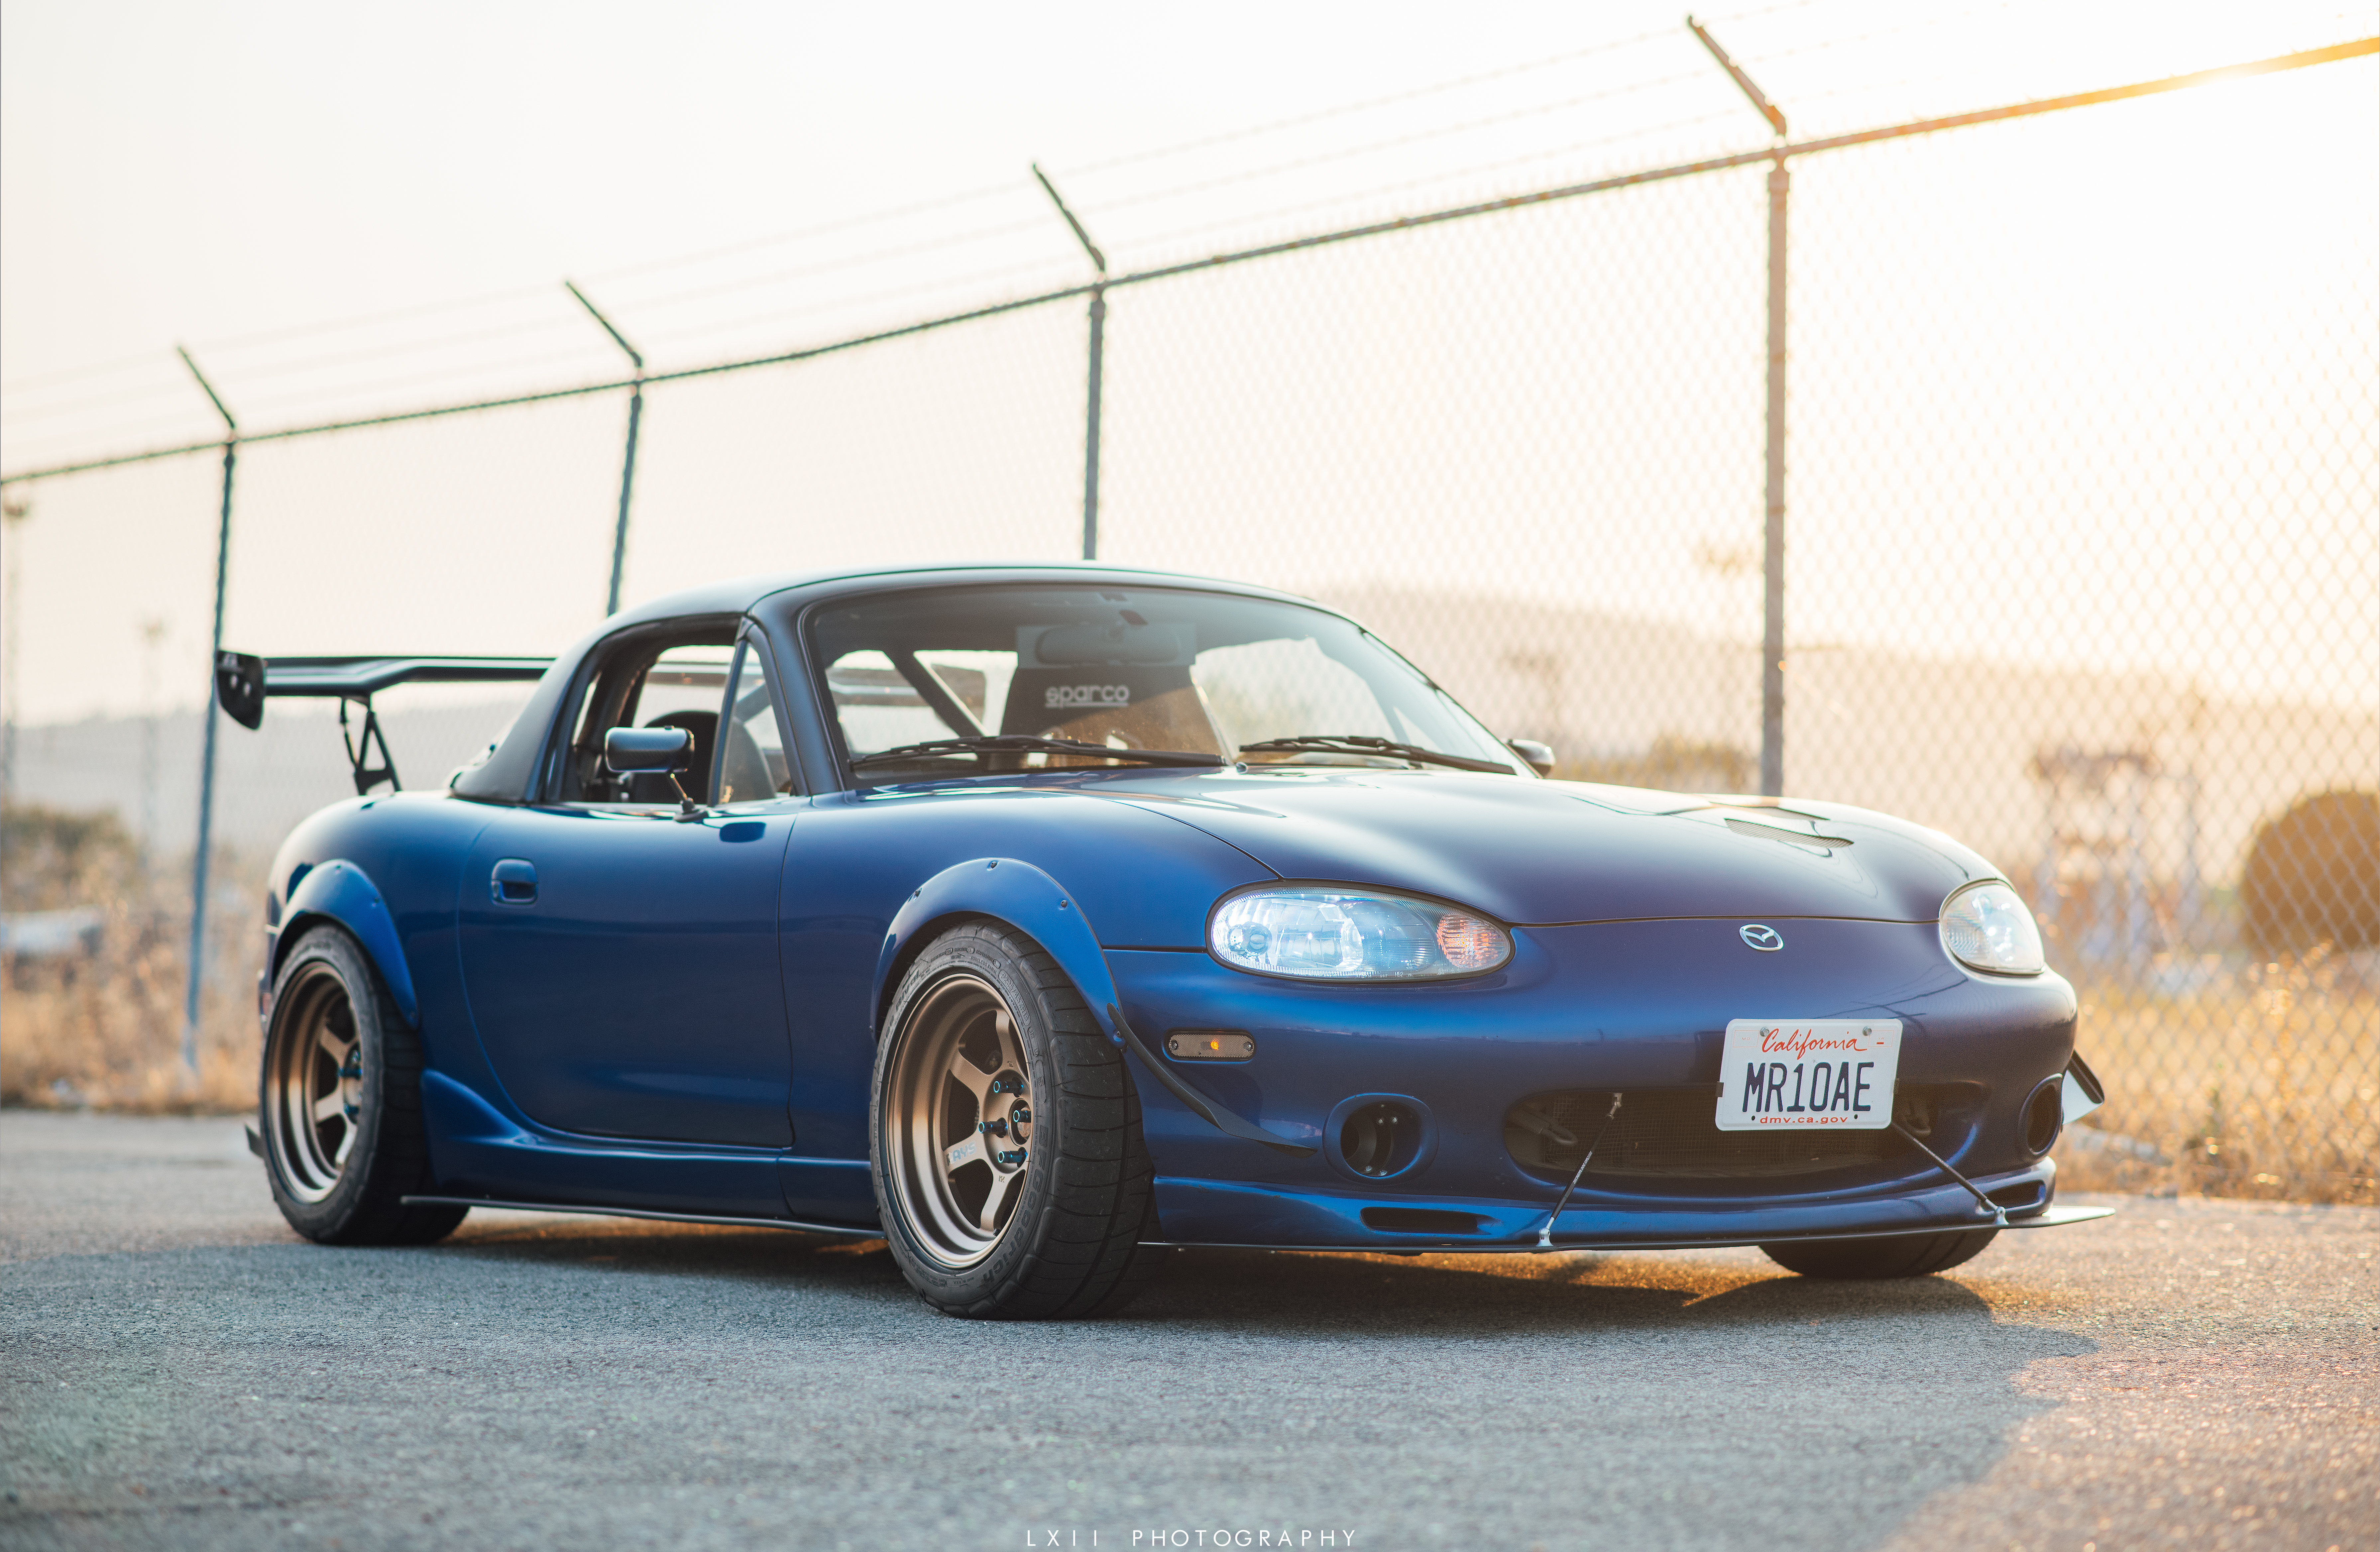 Kento's Jackson Racing Supercharged 10th Anniversary Edition